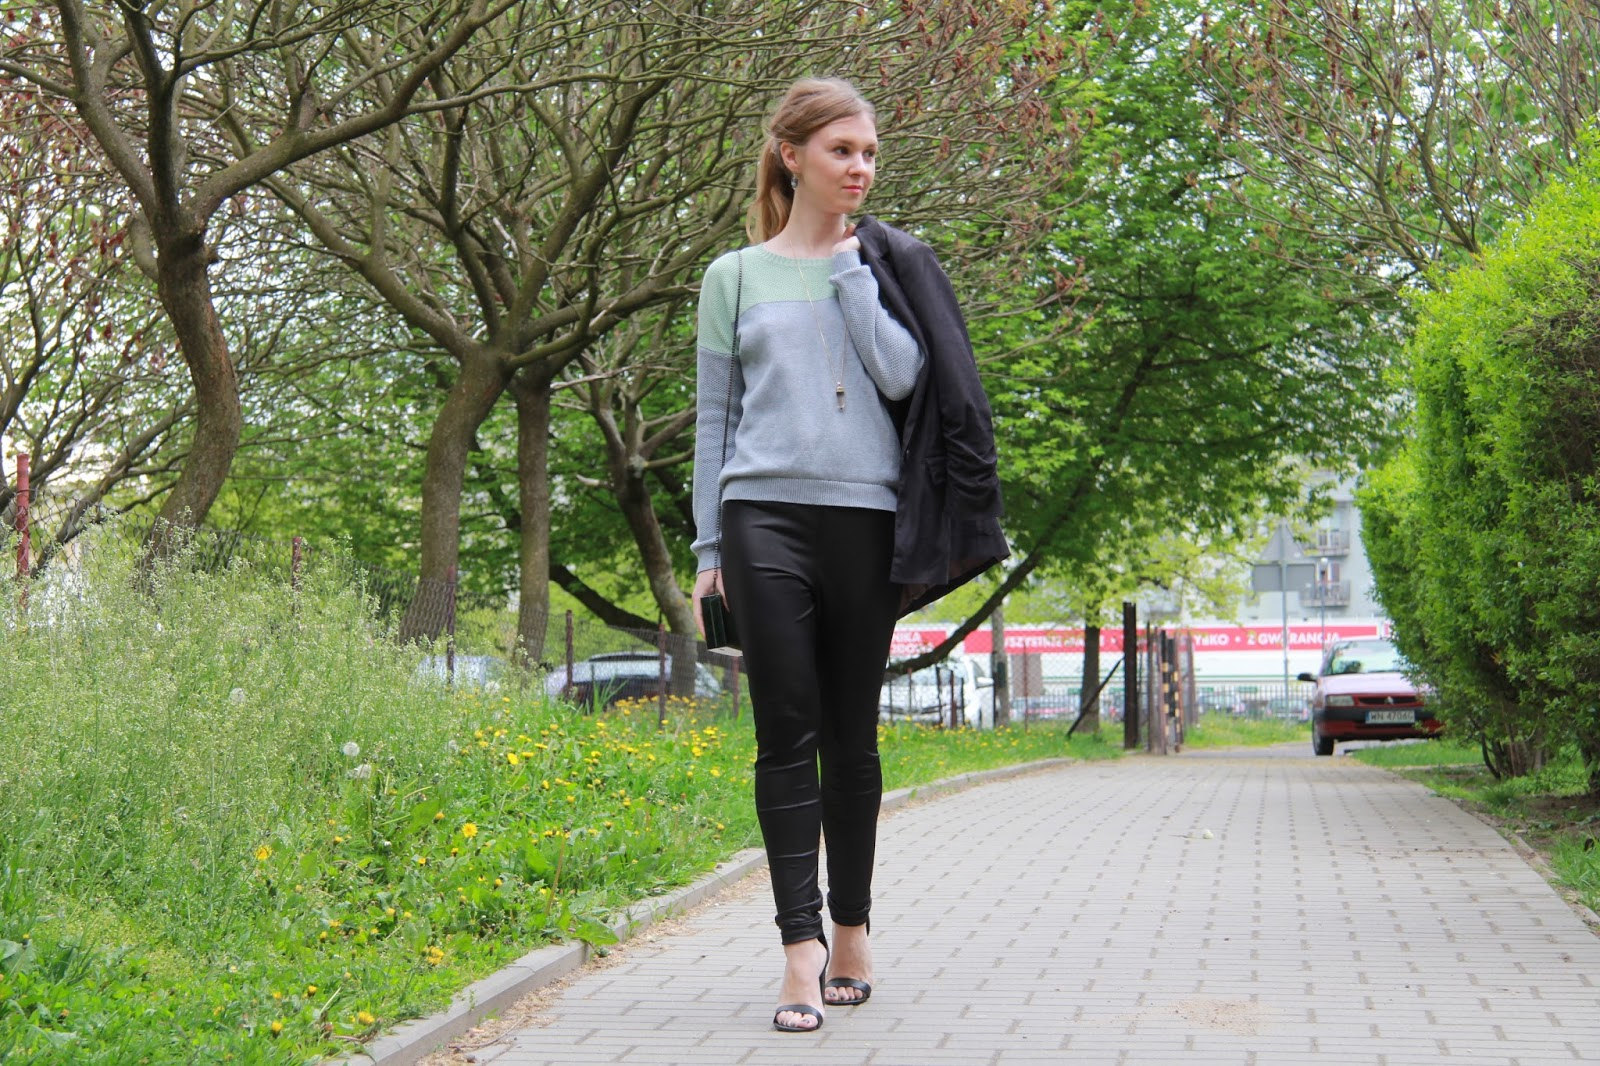 gisele bundchen inspired #outfit